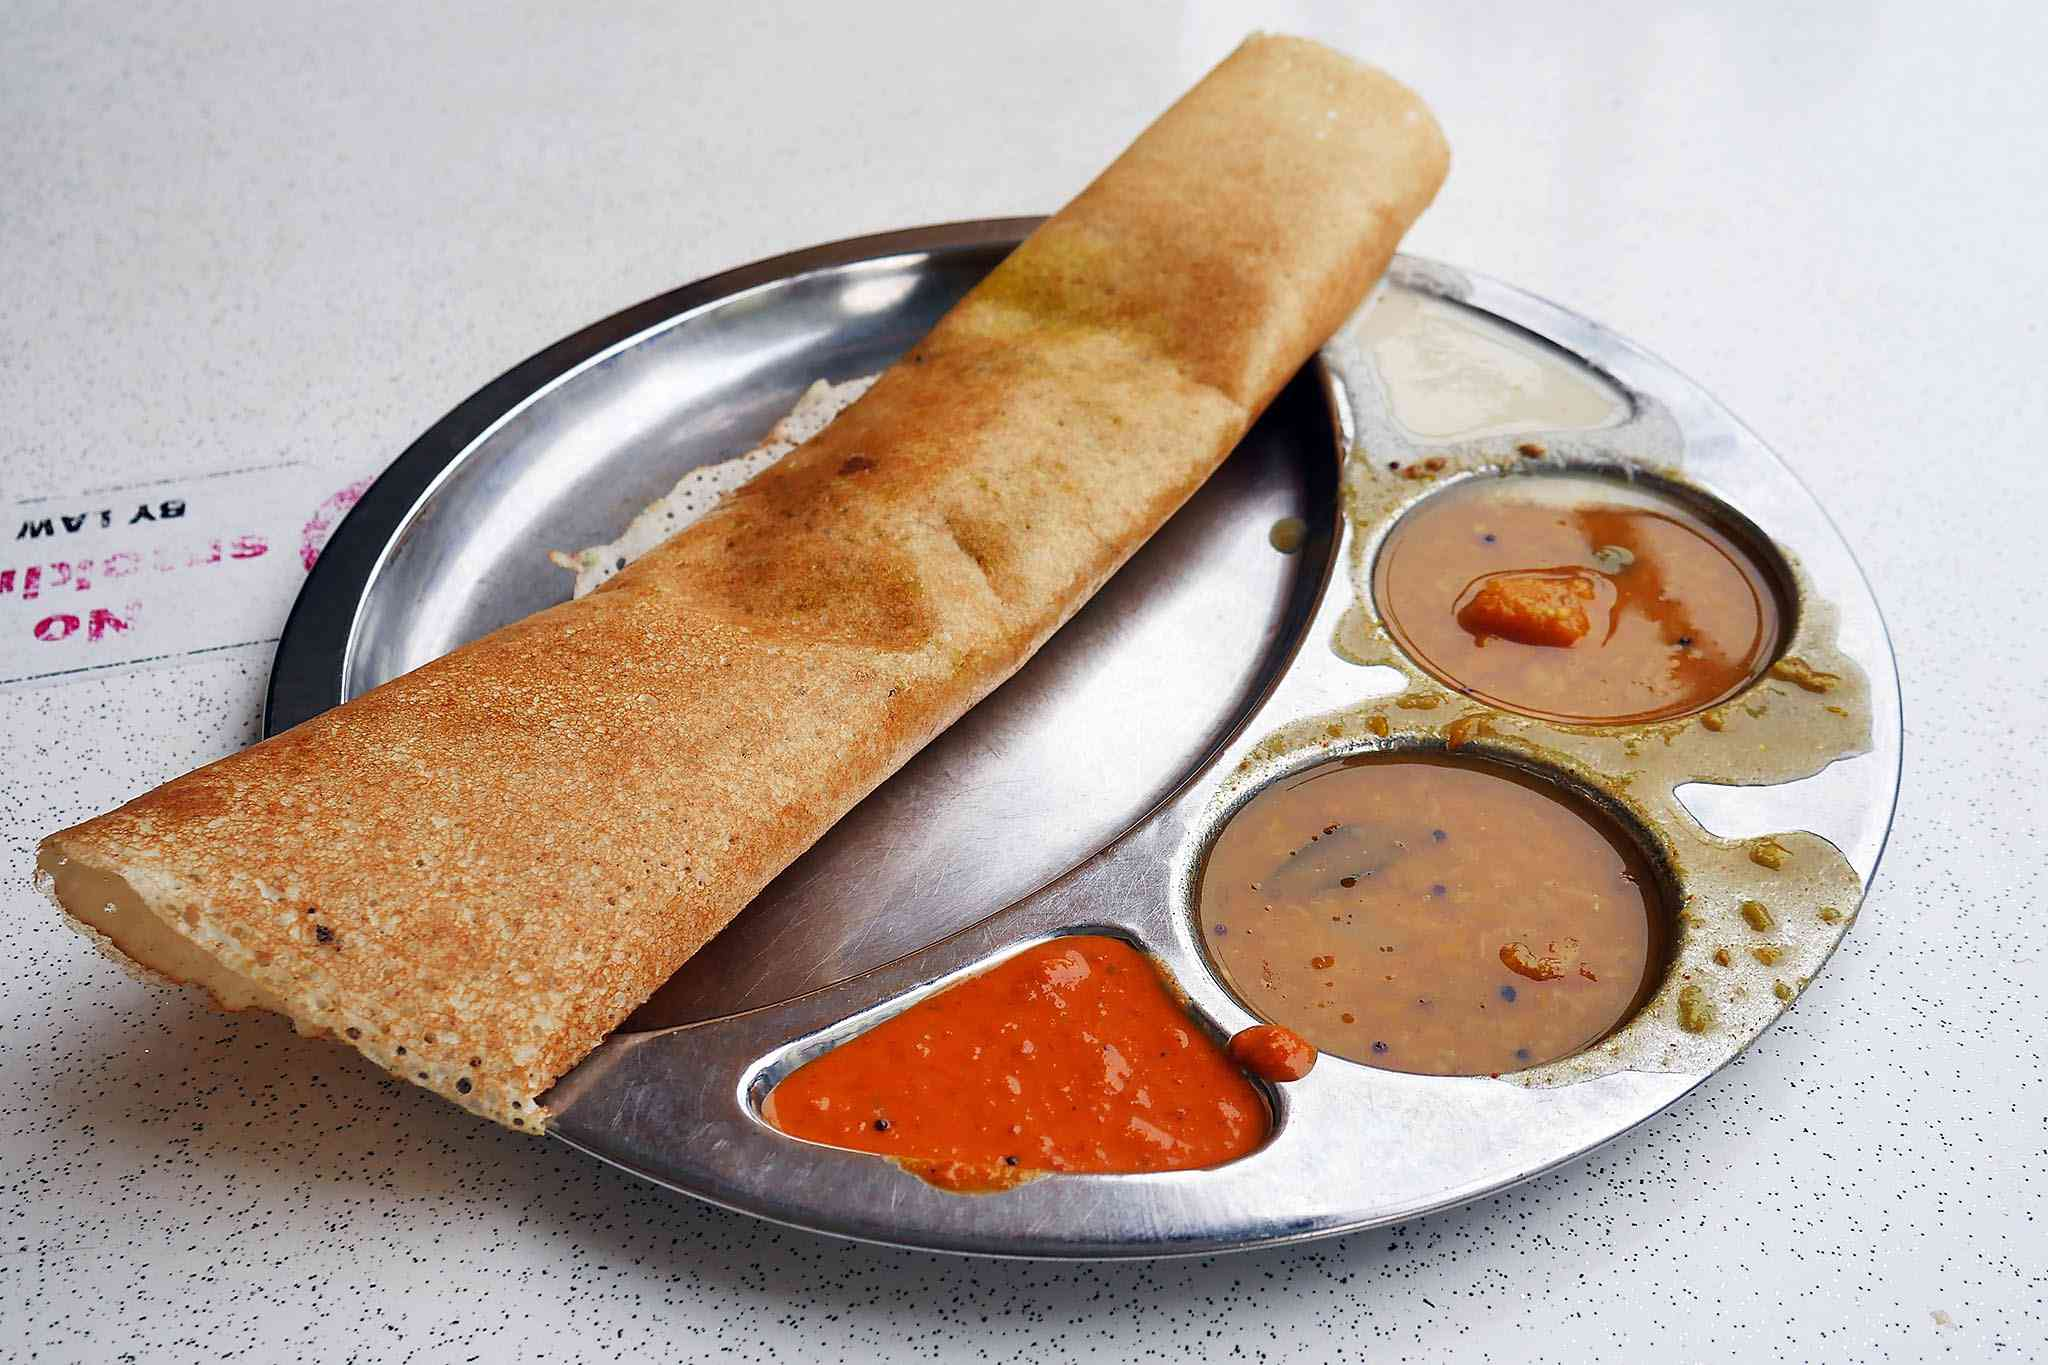 Dosa pancake on plate with side sauces